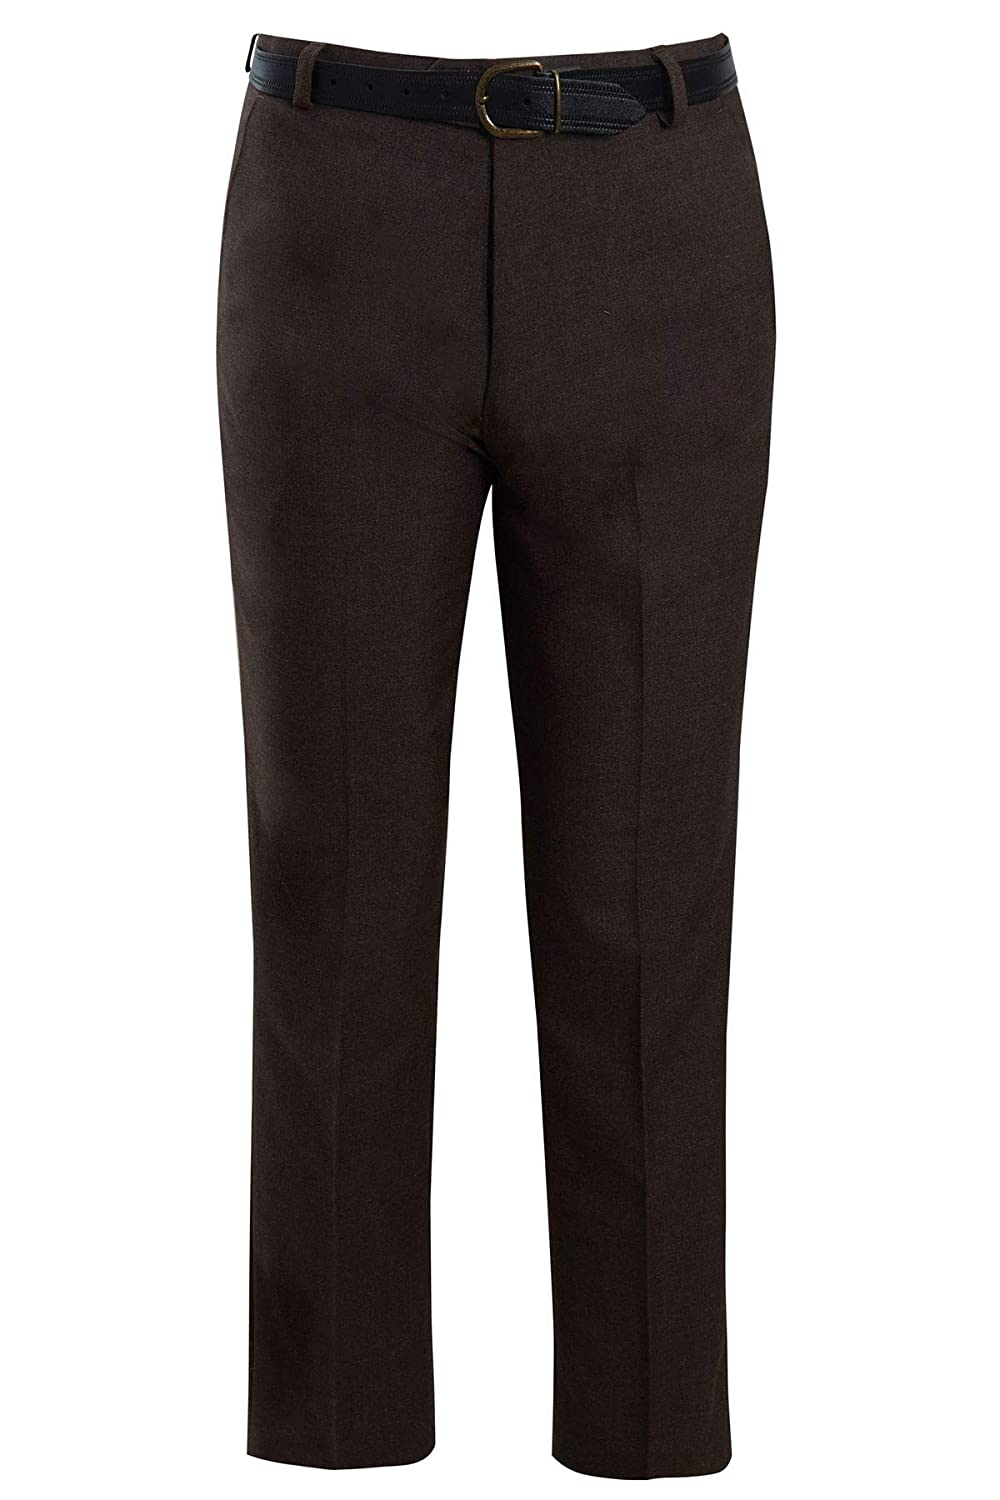 shelikes Mens Formal Trousers Casual Business Office Work Belted Smart Straight Leg Everpress Pants Size 30-50